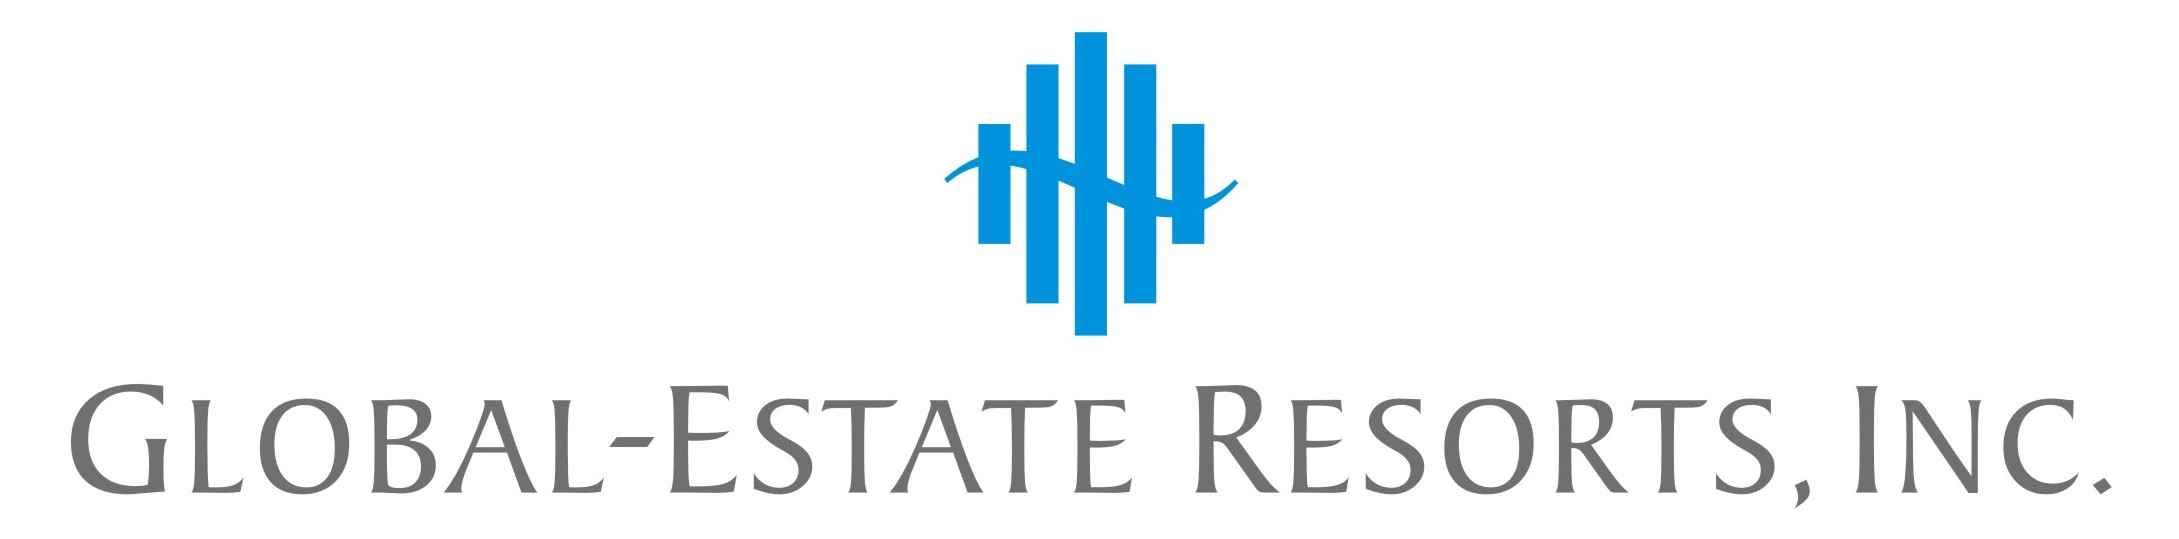 Global Estate Resorts, Inc.